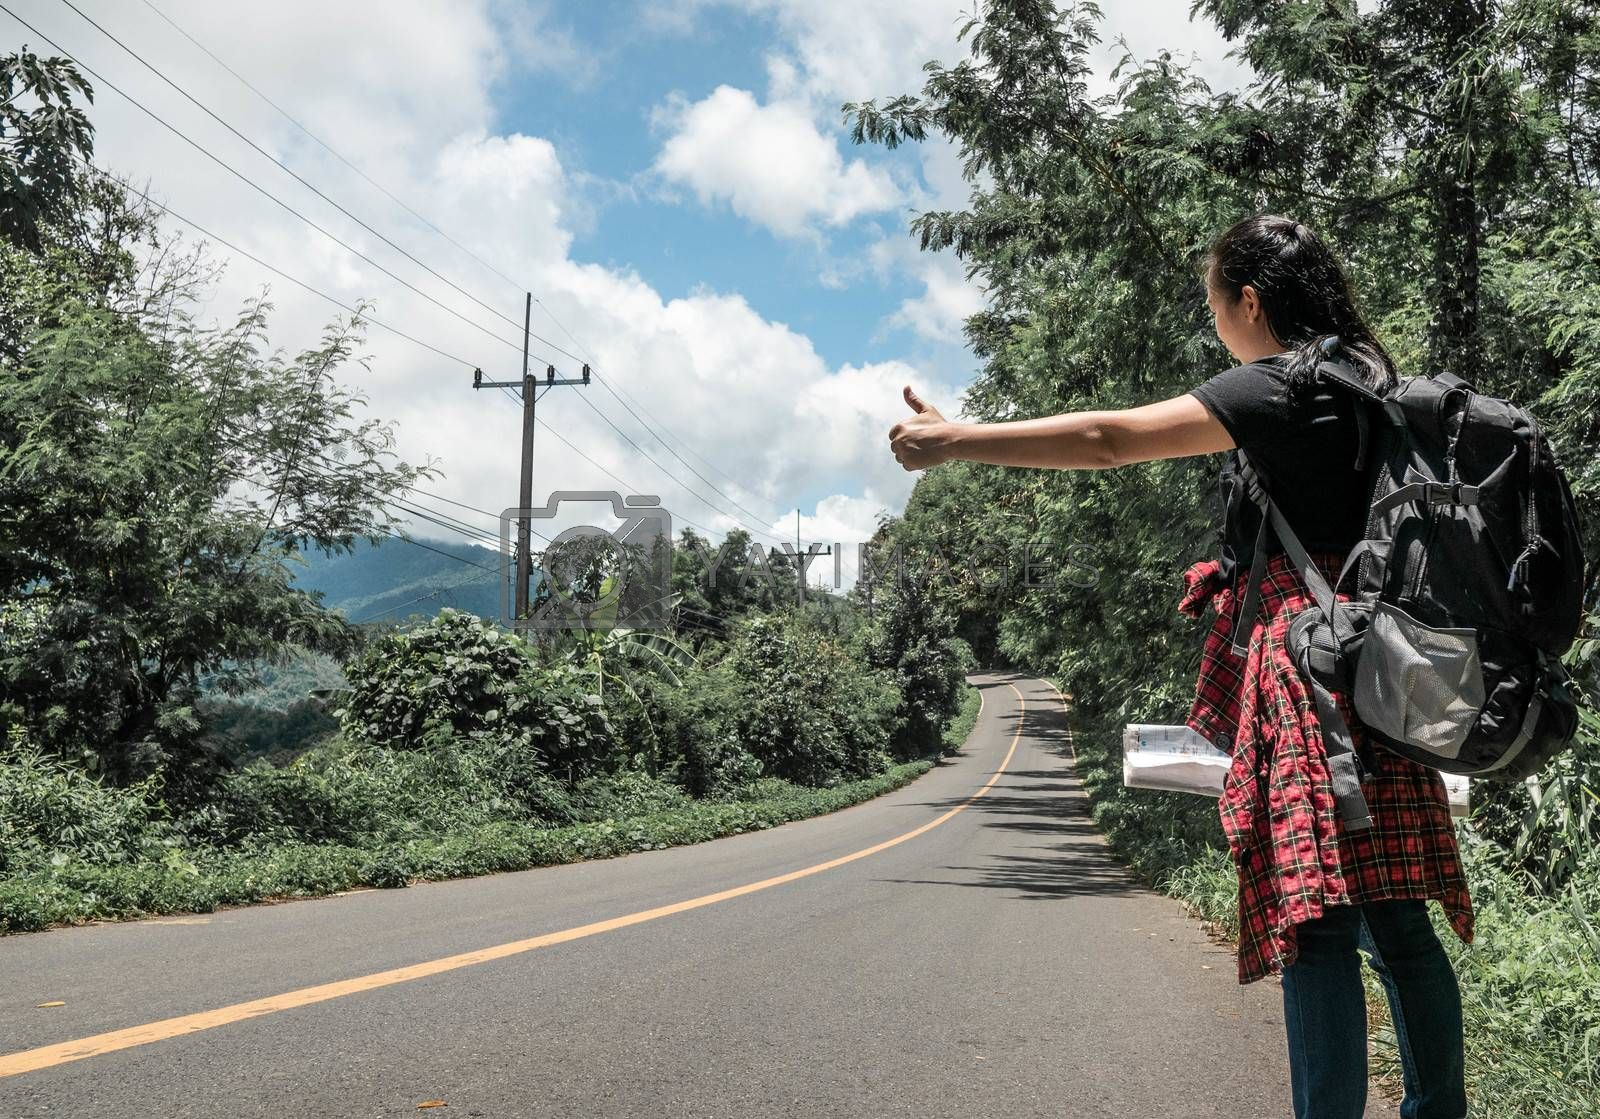 Travel woman backpacking hitchhiking by the road during summer vacation trip in amazing landscape nature in Thailand. Traveling and hitchhiking concepts.